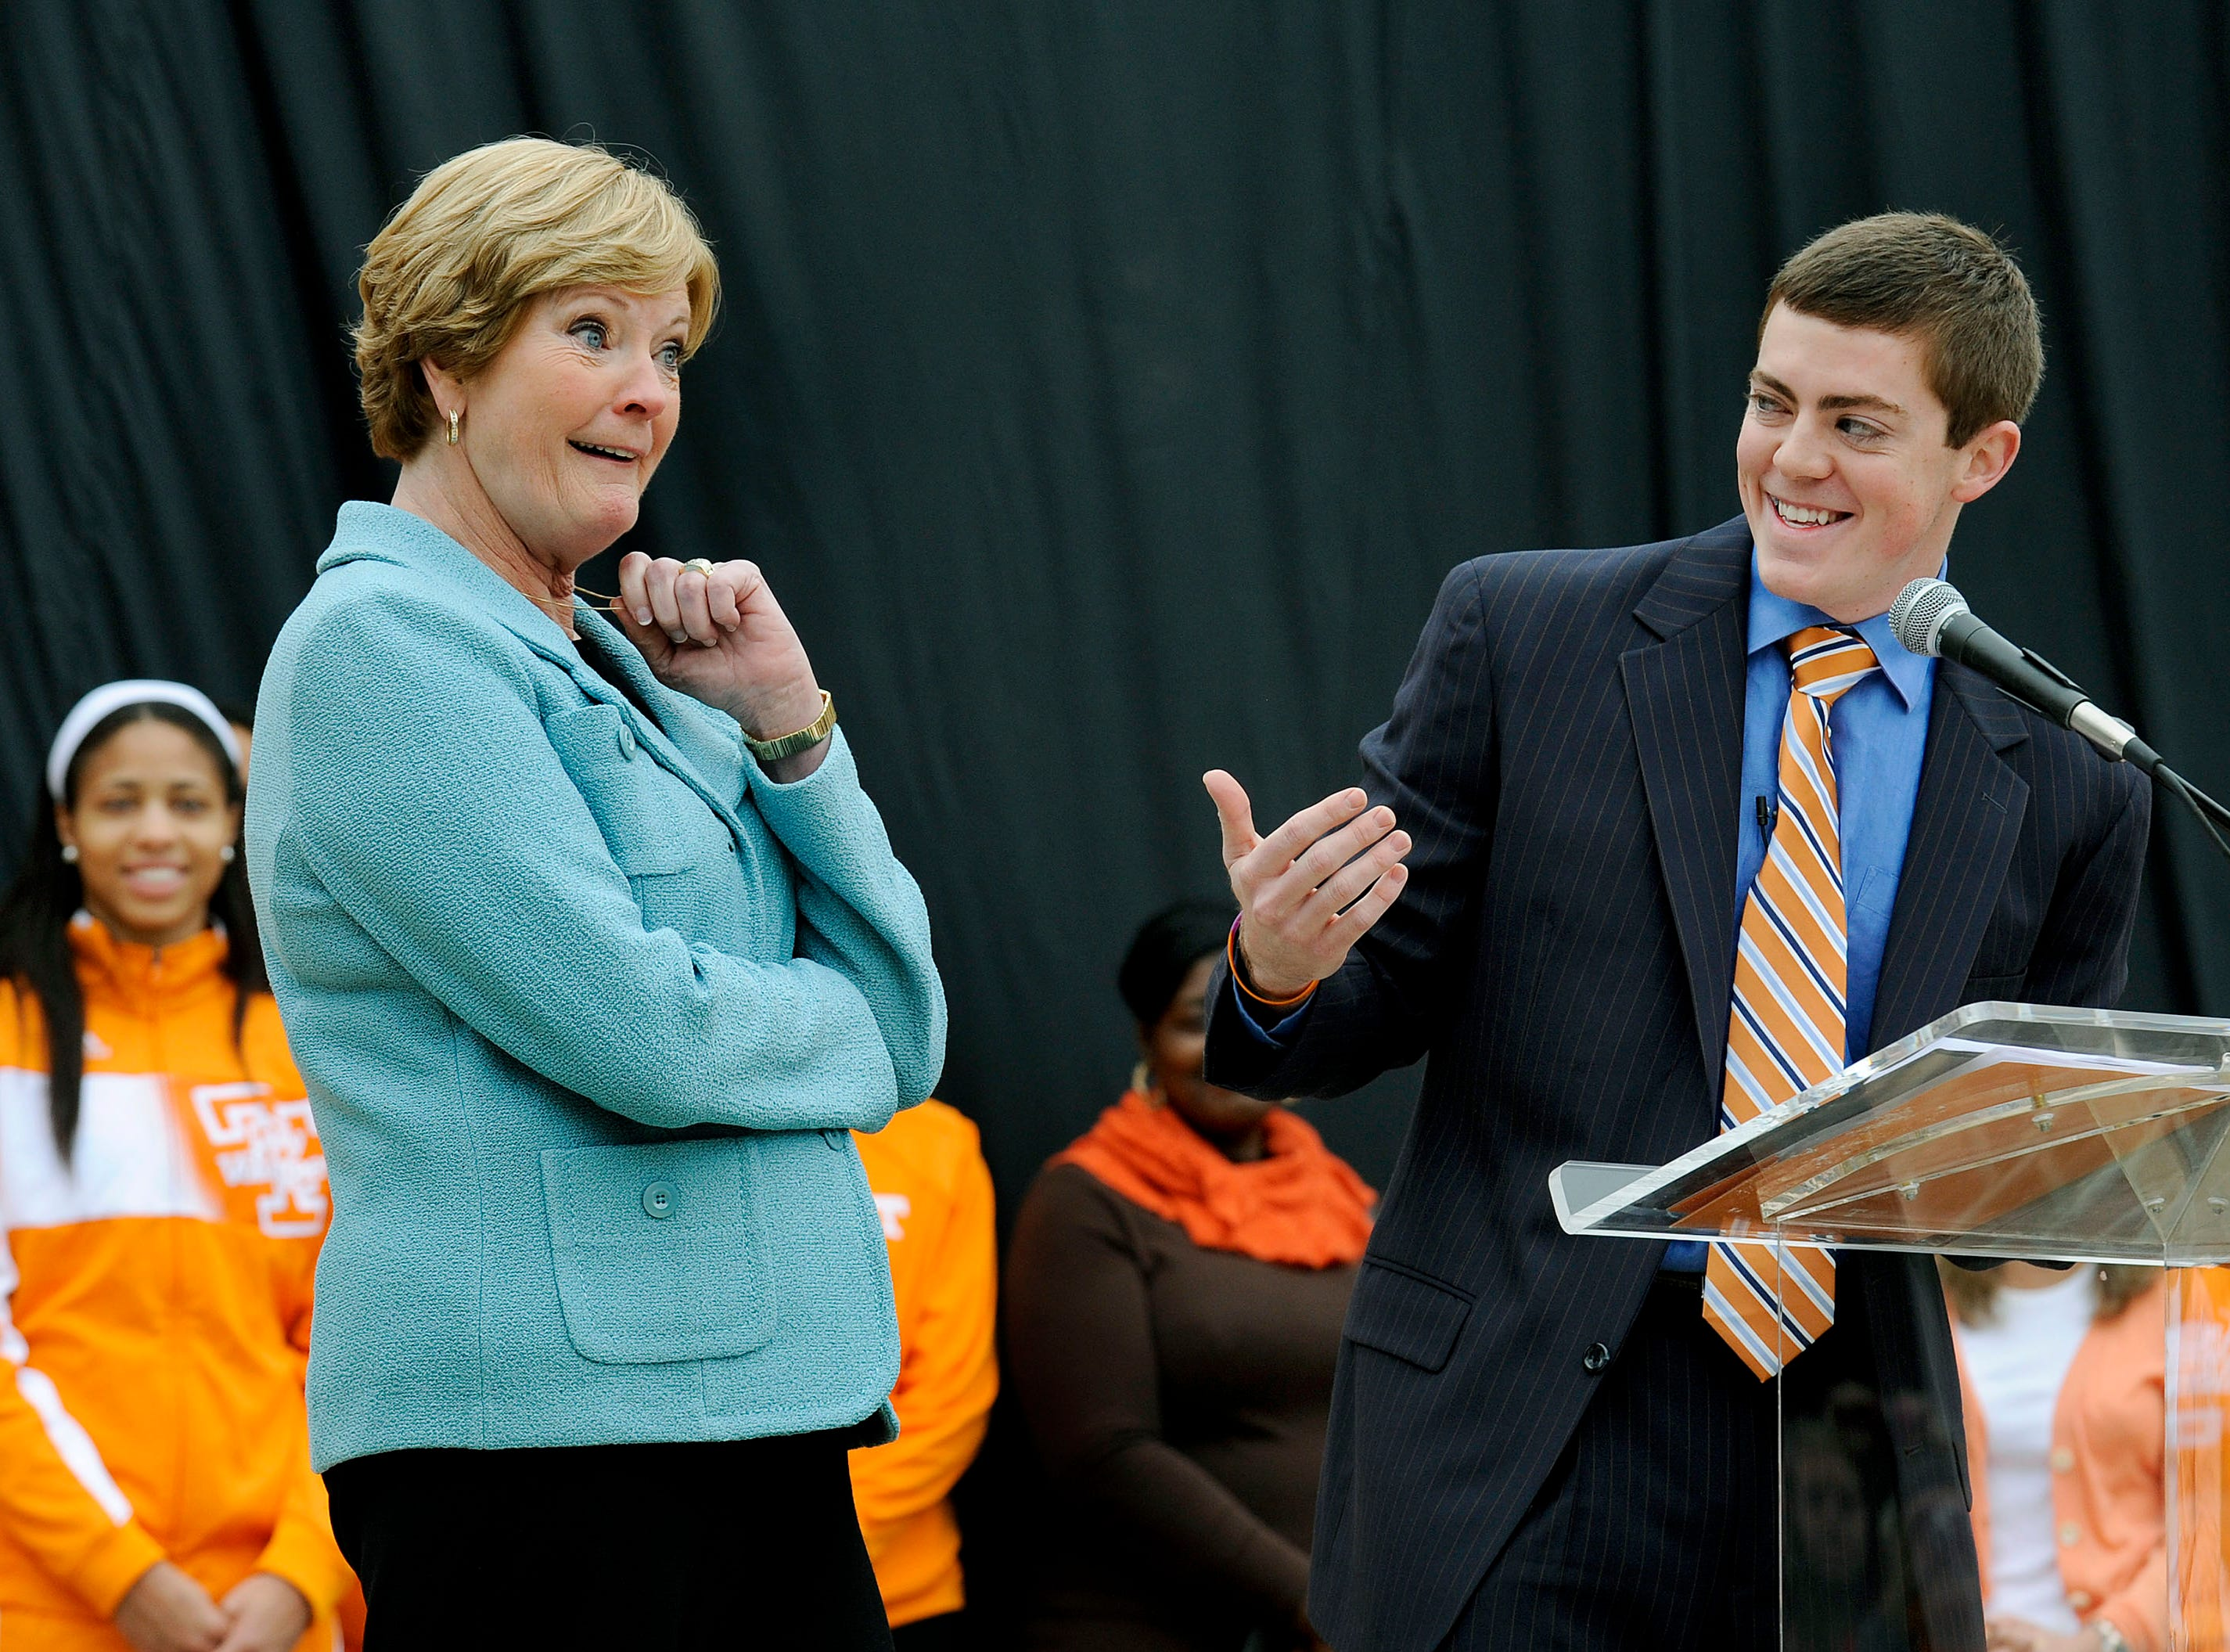 Legendary coach Pat Summitt reacts during her son Tyler's speech Friday, Nov 22, 2013 at the unveiling a sculpture at Pat Summitt Plaza on campus.